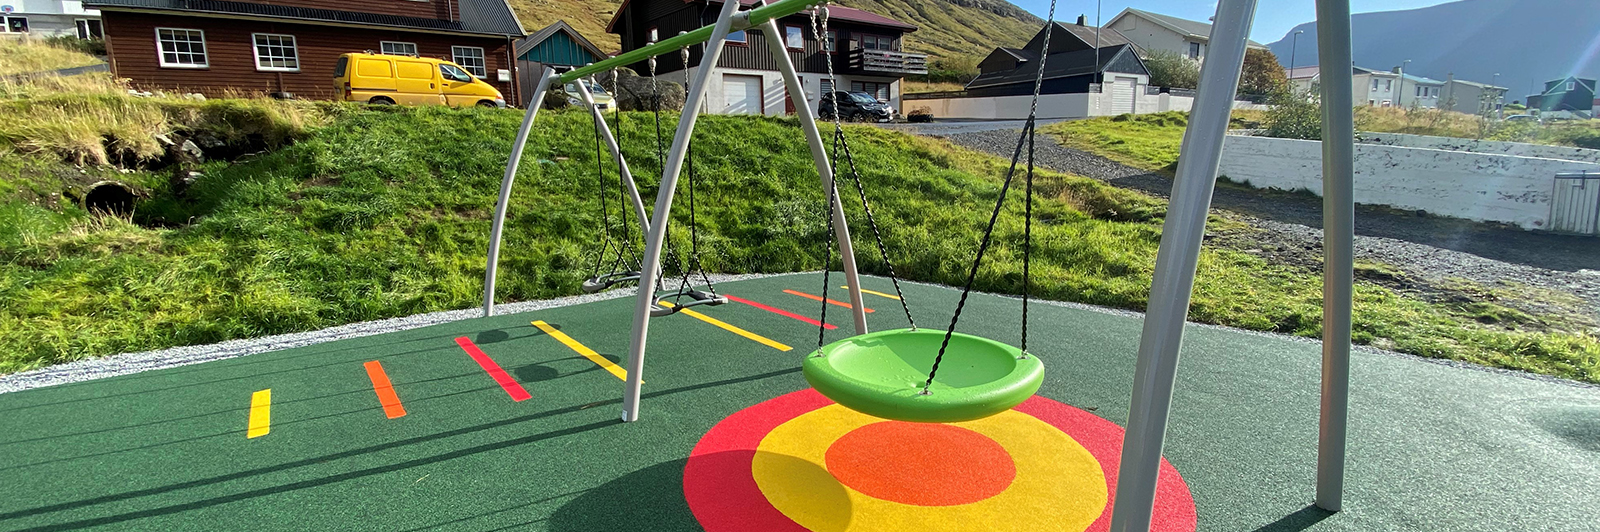 Colourful Swings in a Playground